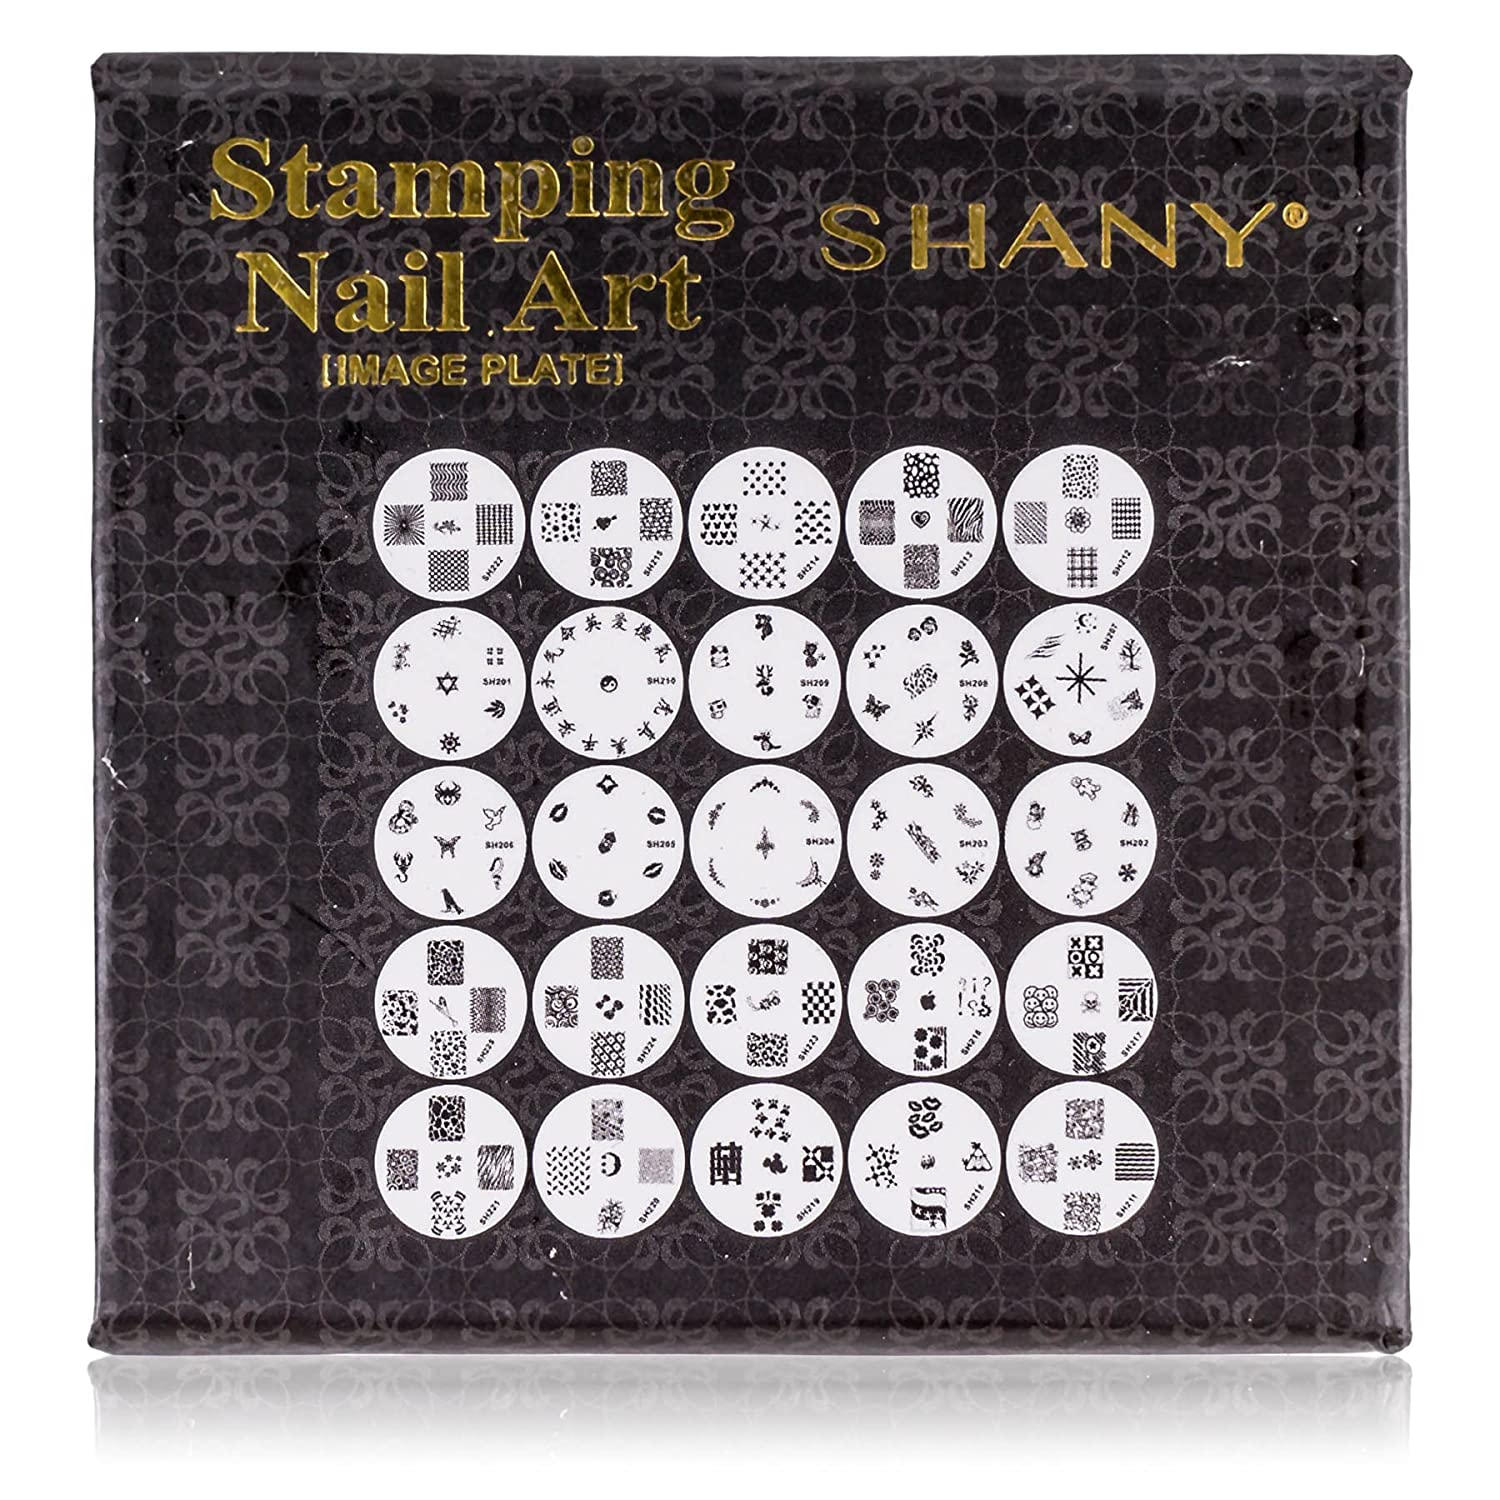 Amazon shany cosmetics new image plates set nail polish amazon shany cosmetics new image plates set nail polish image plates with storage 25 count nail decorations beauty prinsesfo Image collections